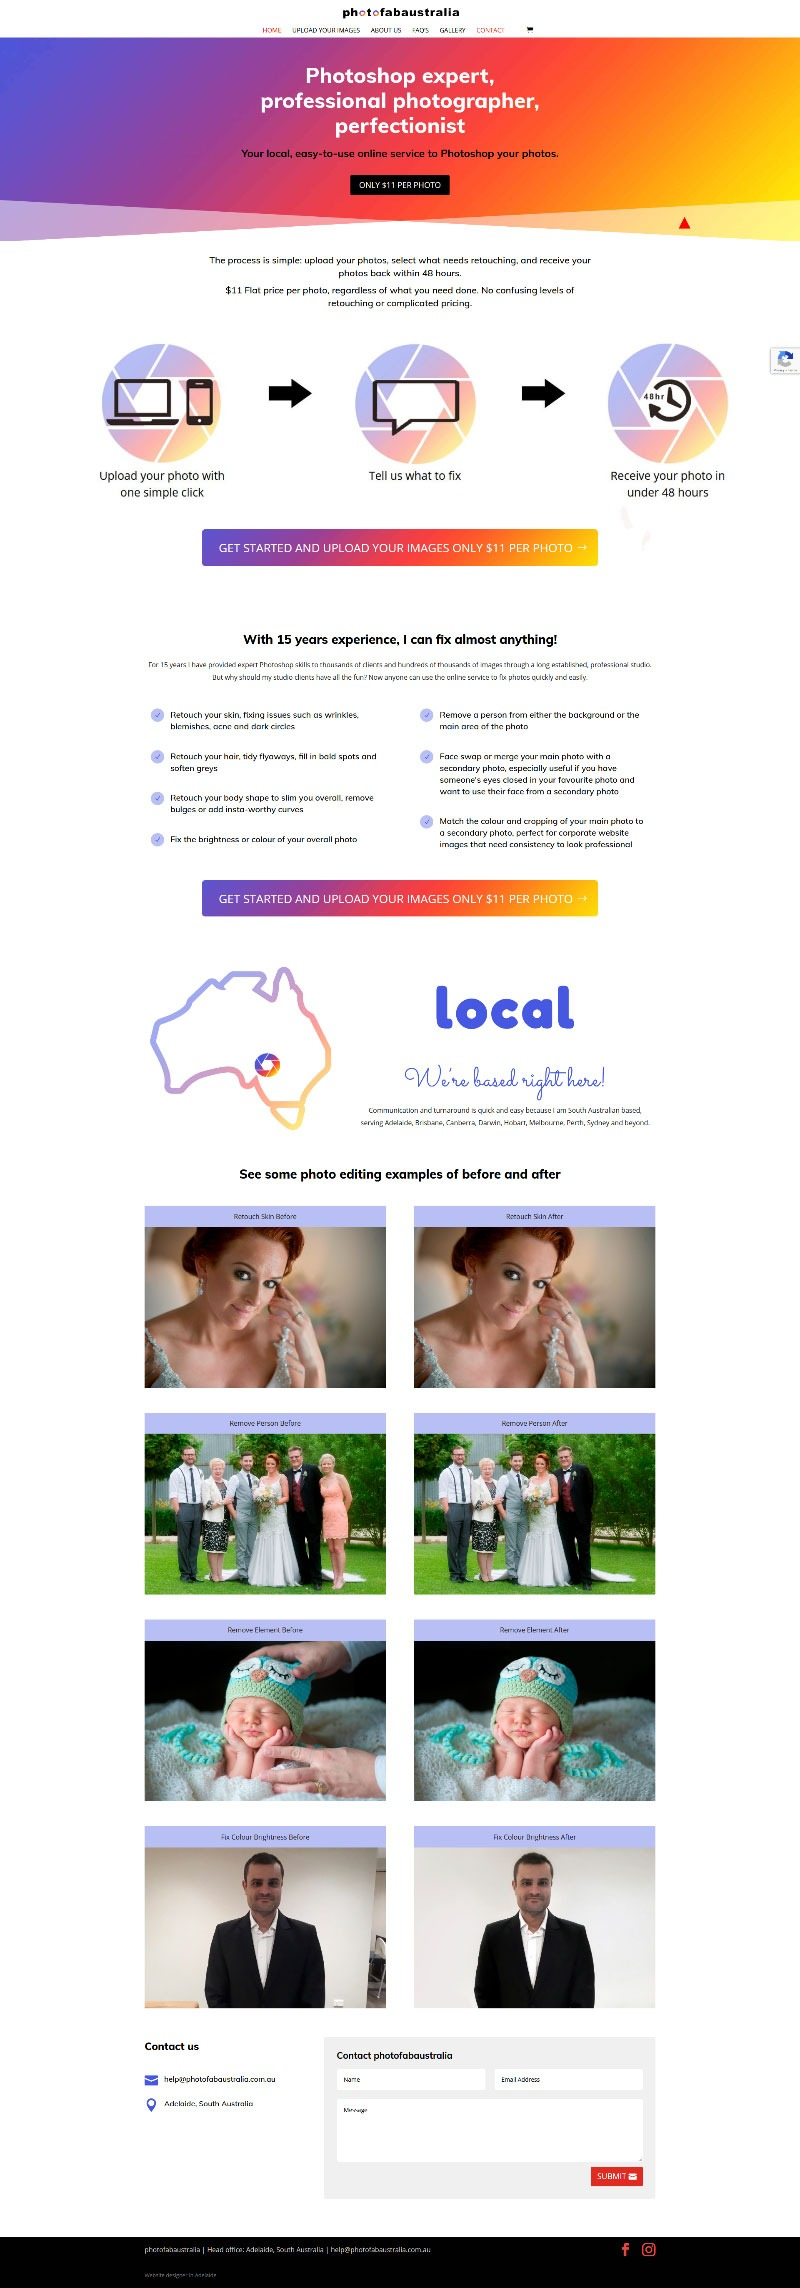 website design in adelaide for photo editing business